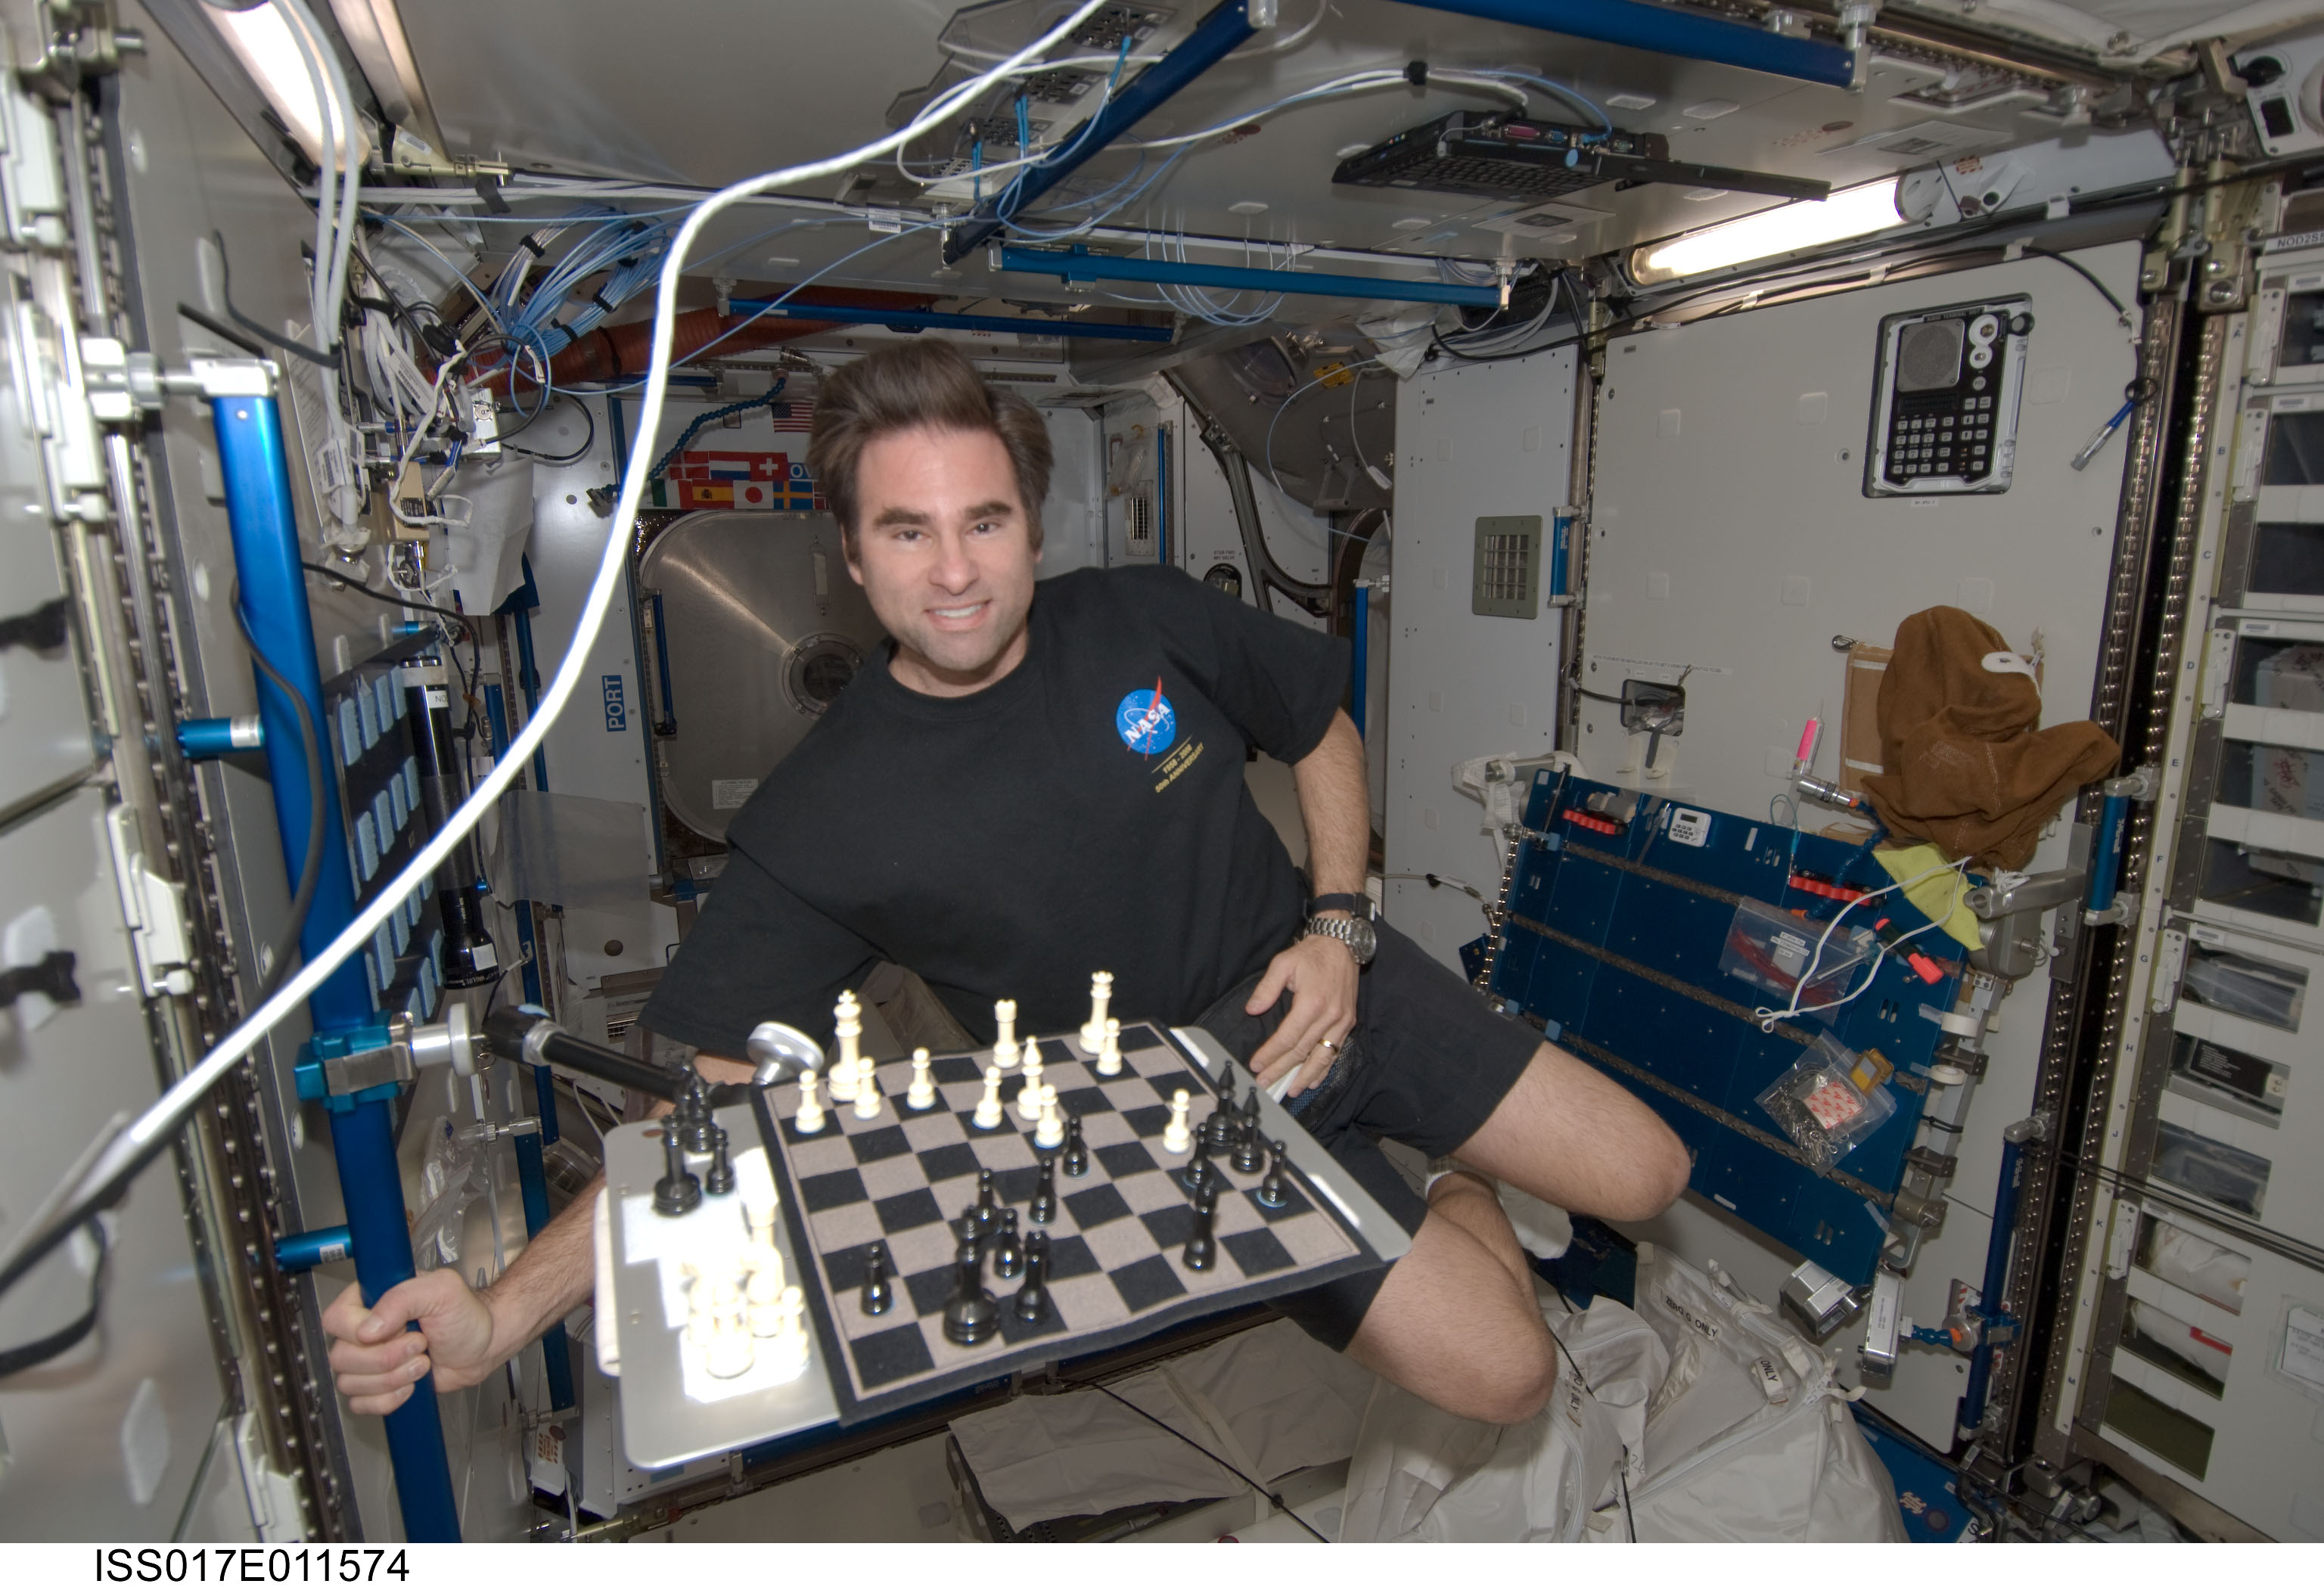 nasa space station inside - photo #7